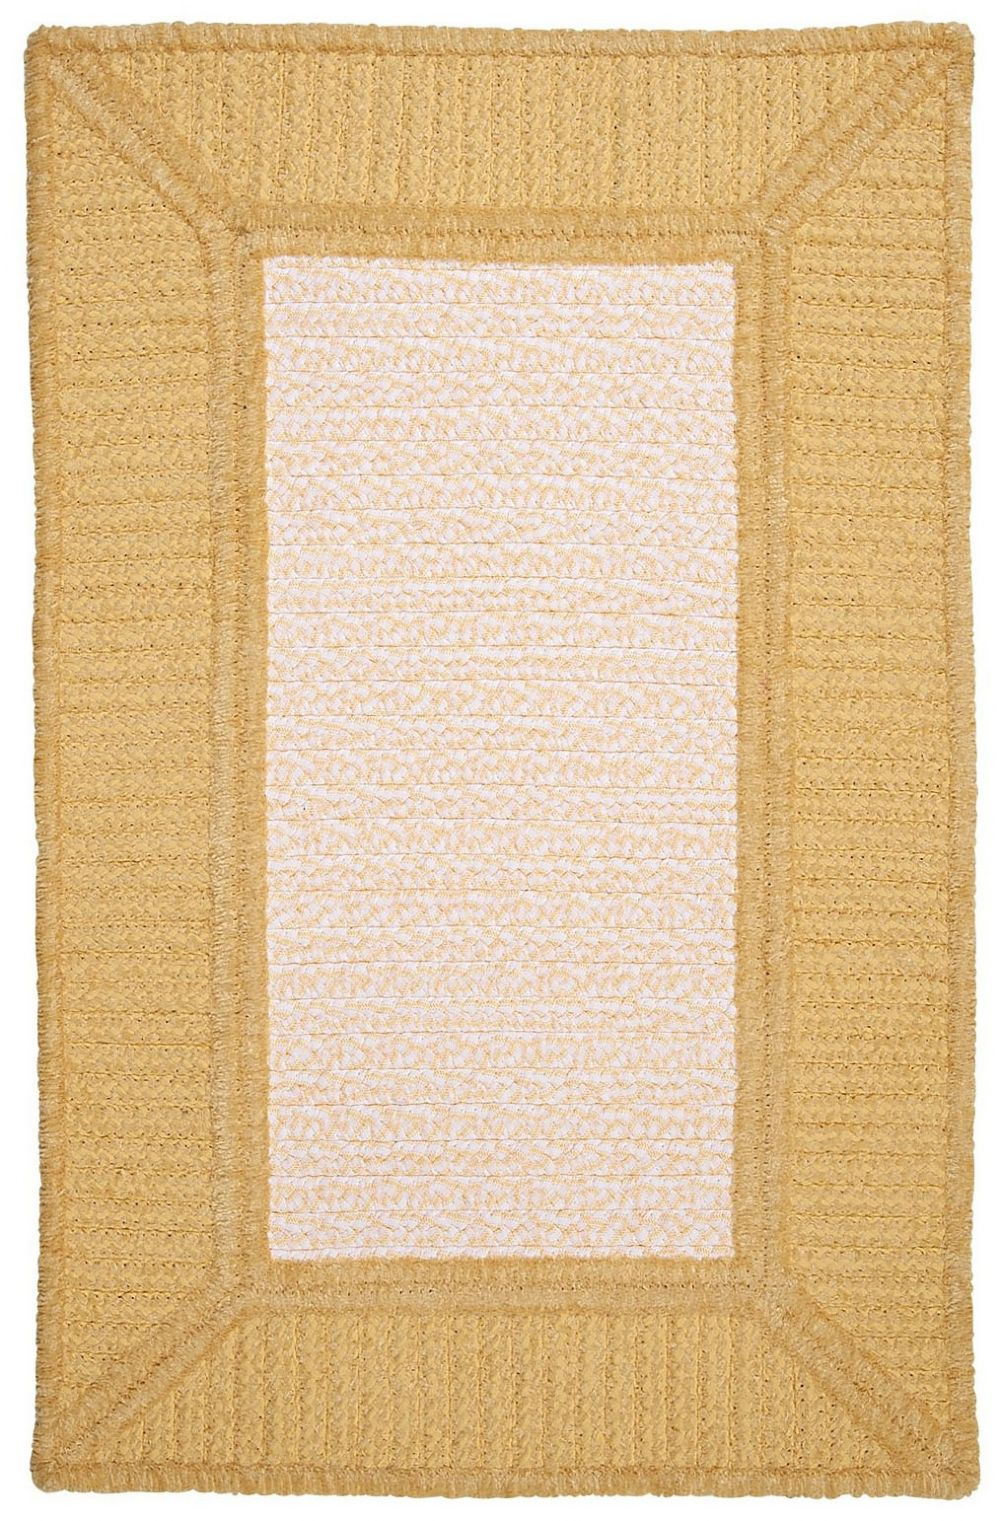 colonial mills gravel bay braided area rug collection